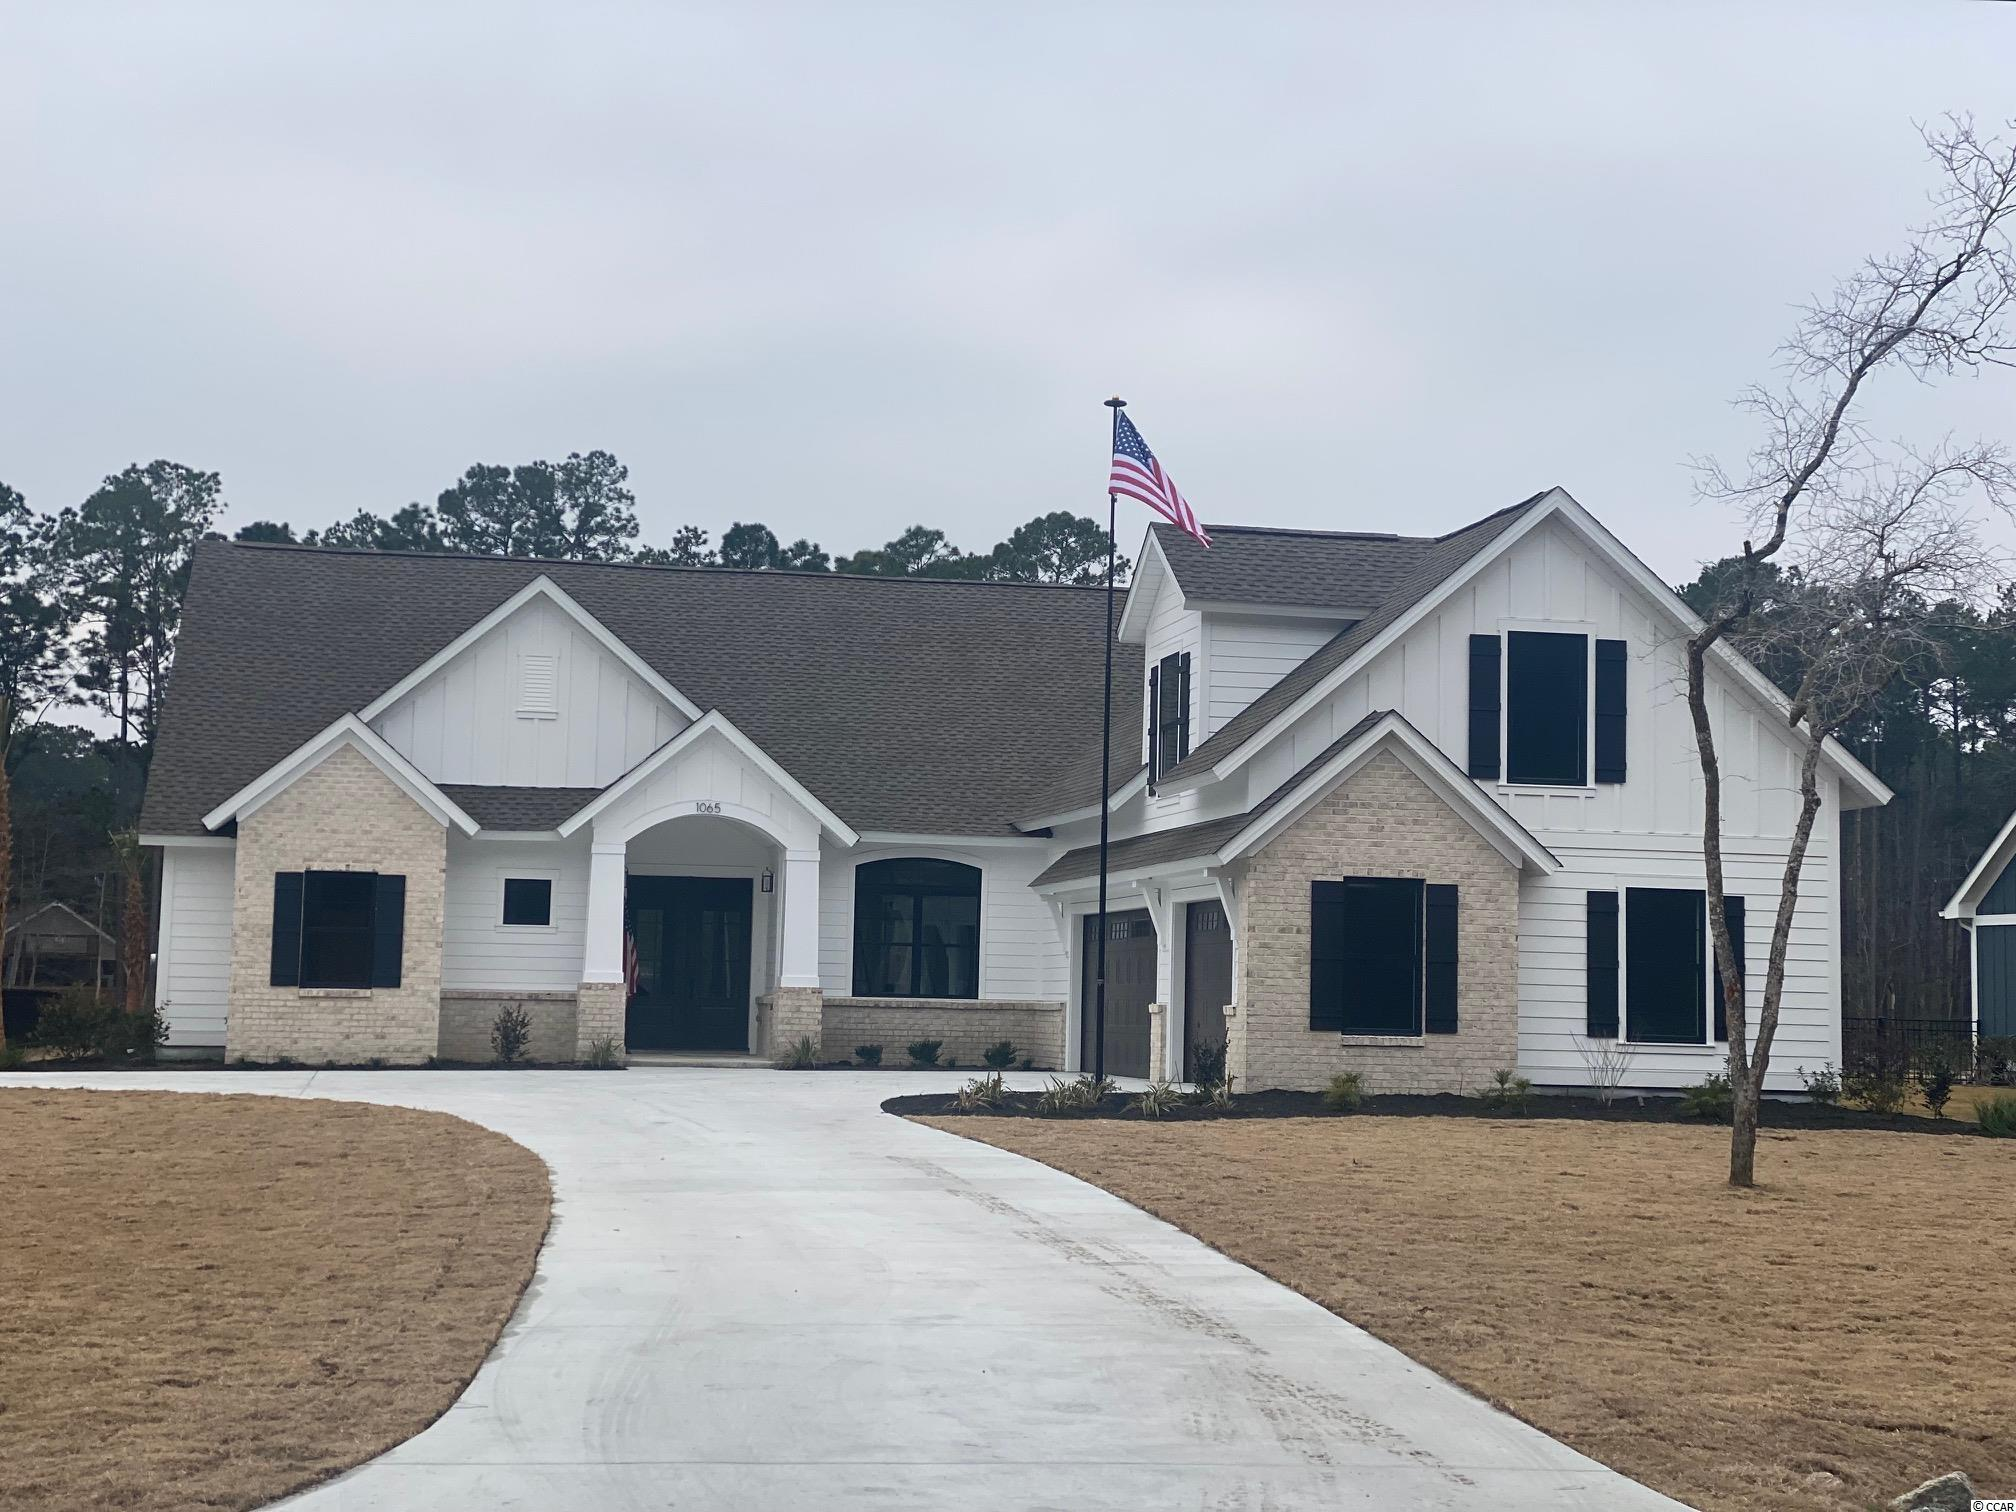 Welcome to BEAUMONT PARK in Pawleys Island!  New development just minutes from the beach, restaurants, grocery stores and more. 1.13 acre home site with NO HOA. Custom builder. Construction to begin Spring 2021. This  Westchester home plan is to be built with approx. 2907 Heated Square Feet.  Contemporary craftsman style 3 bedroom, 3.5 bath home with a bonus room and 3 car garage, dining room, breakfast nook, a 20 x 11 covered veranda and 15 x 12 patio off of large family room, and  an optional  screened porch off of the breakfast area. The master bedroom has 2 walk in closets, double tray ceilings, master bath has a double vanity, walk in tiled shower, and free standing tub and single tray ceilings. Two additional bedrooms with single tray ceilings, are located opposite side of home with their own private baths. A half bath is located off of the family room. A laundry room and a bonus room with a full bath that could be a 4th bedroom.  Hardie plank, shake, board & batten siding along with brick accenting exterior. This home has many amazing features such as 10 foot ceilings in main living area and the bedrooms and bonus room have 9 ft ceilings. Rounded sheet rock corners, crown molding in main living areas, custom melamine shelvng in pantry and master closets.  An open floor plan with a large great room with a fireplace and custom built-ins on each side of fireplace and cathedral ceilings and dining room also has double tray ceilings.  Beautiful interior features throughout main living area that include granite counter tops and tile backsplash in kitchen, custom cabinets throughout and a rannai tankless hot water heater.  The main living areas and master bedroom have tile flooring or hardwood flooring and other bedrooms and bonus are carpet. The  bathrooms have cultured marble counter tops and tile flooring. Come see Beaumont Park and start living the Pawleys Island lifestyle! . Optional upgrades available upon request. . A retention pond will run along the back of